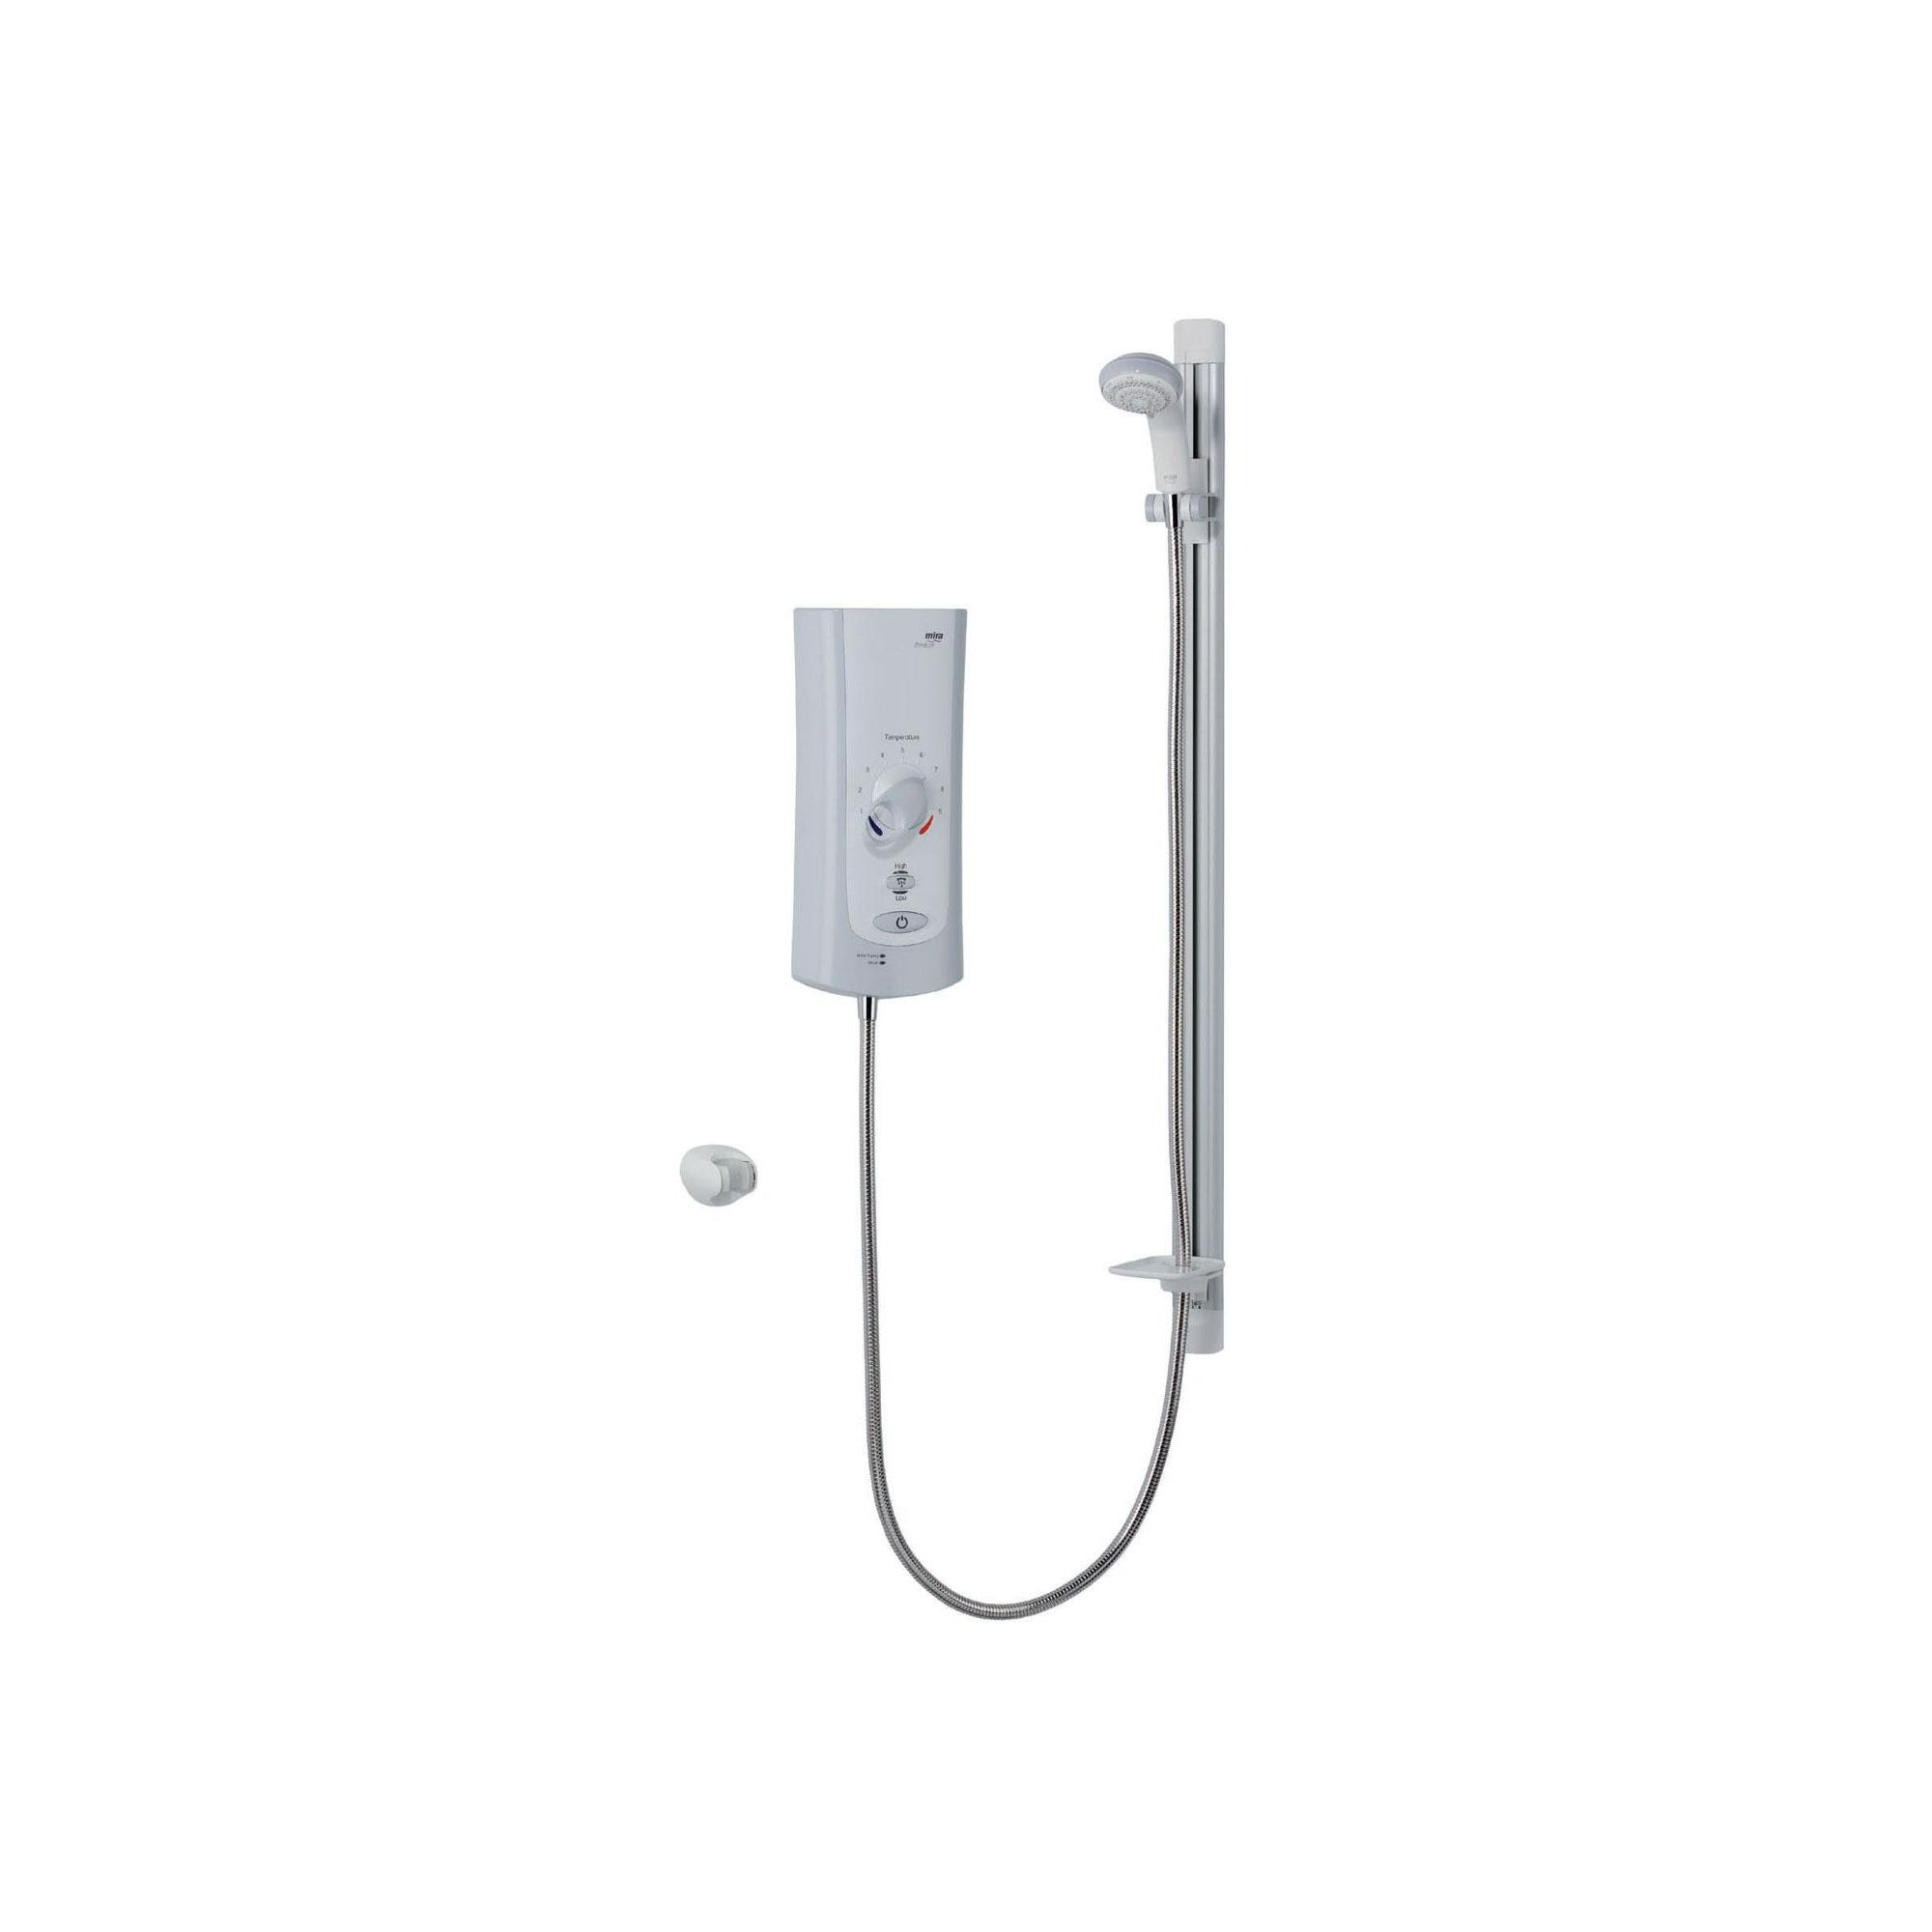 Mira Advance Flex 9.0kw Electric Shower at Tesco Direct